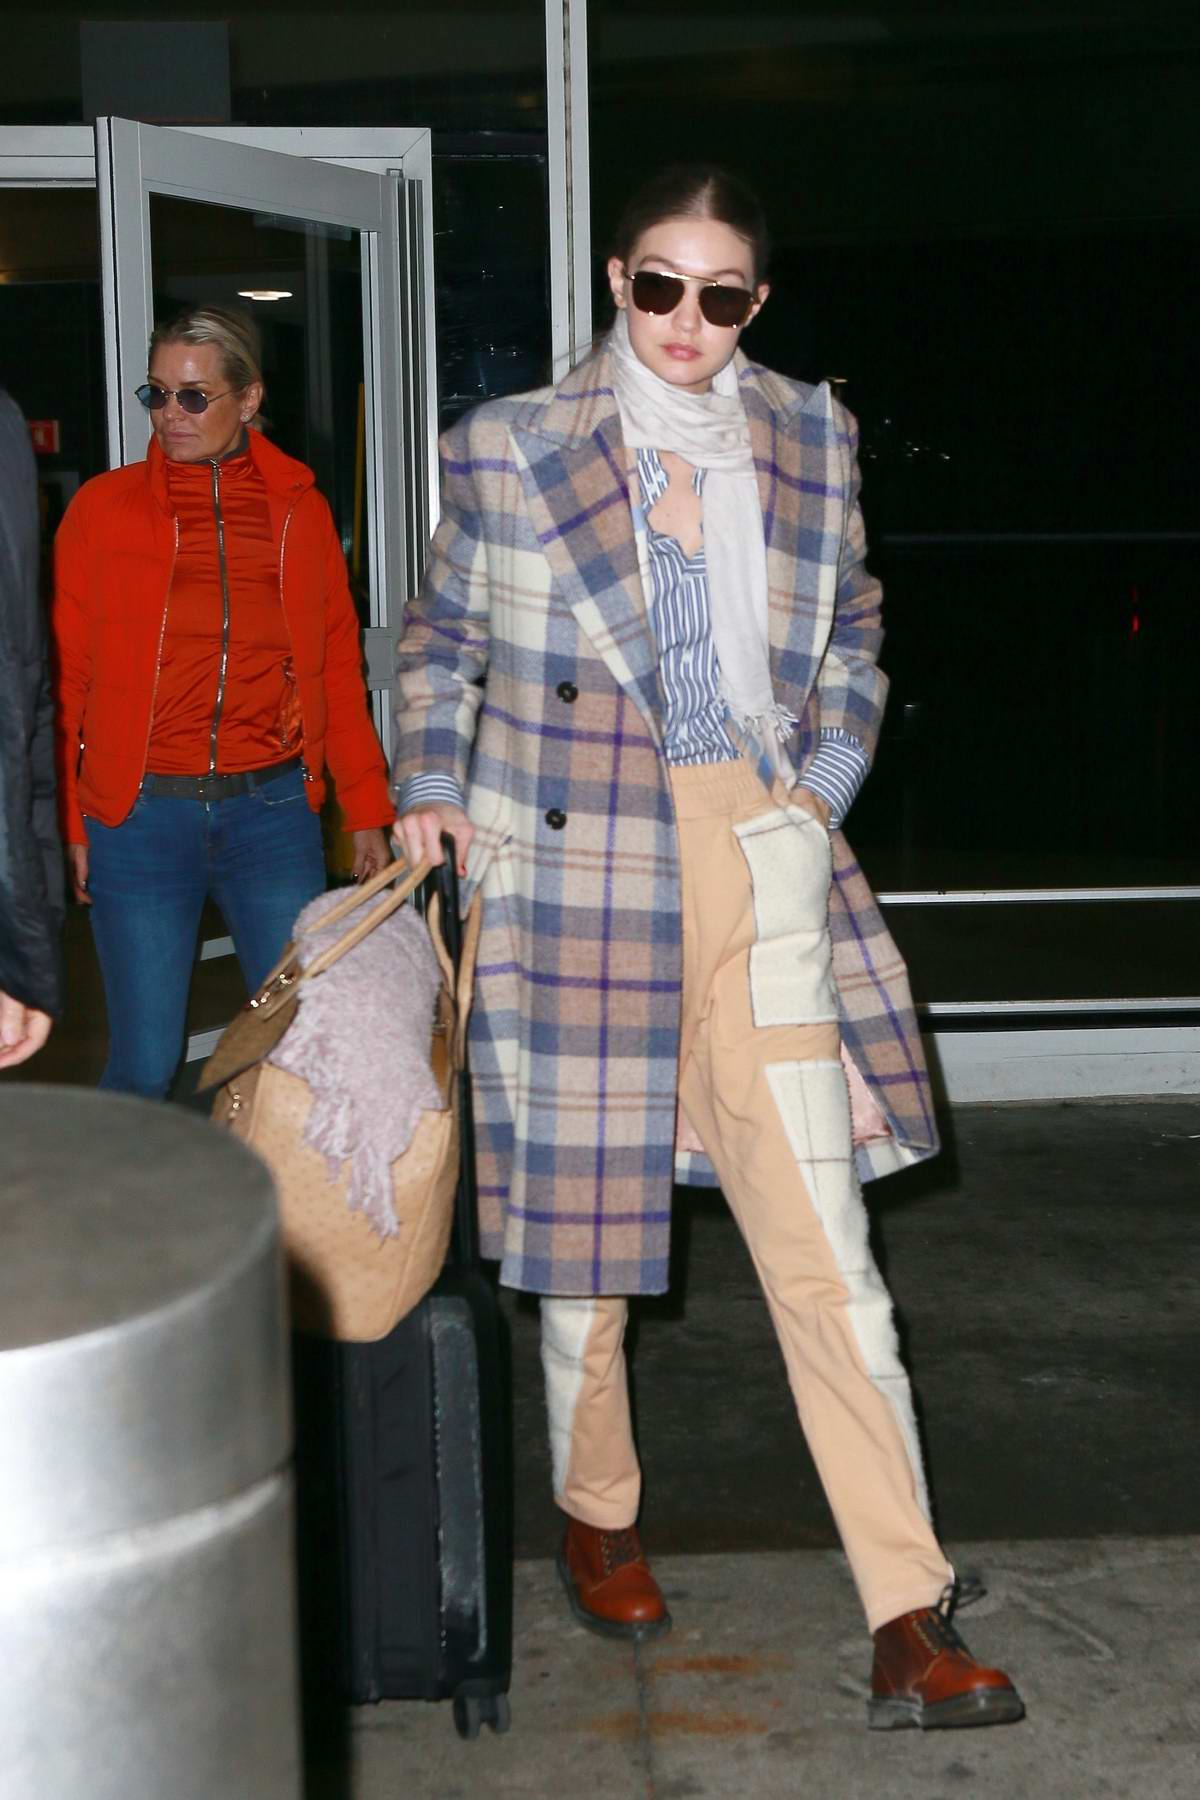 Gigi Hadid and Yolanda Hadid spotted as she they touch down at JFK airport in New York City